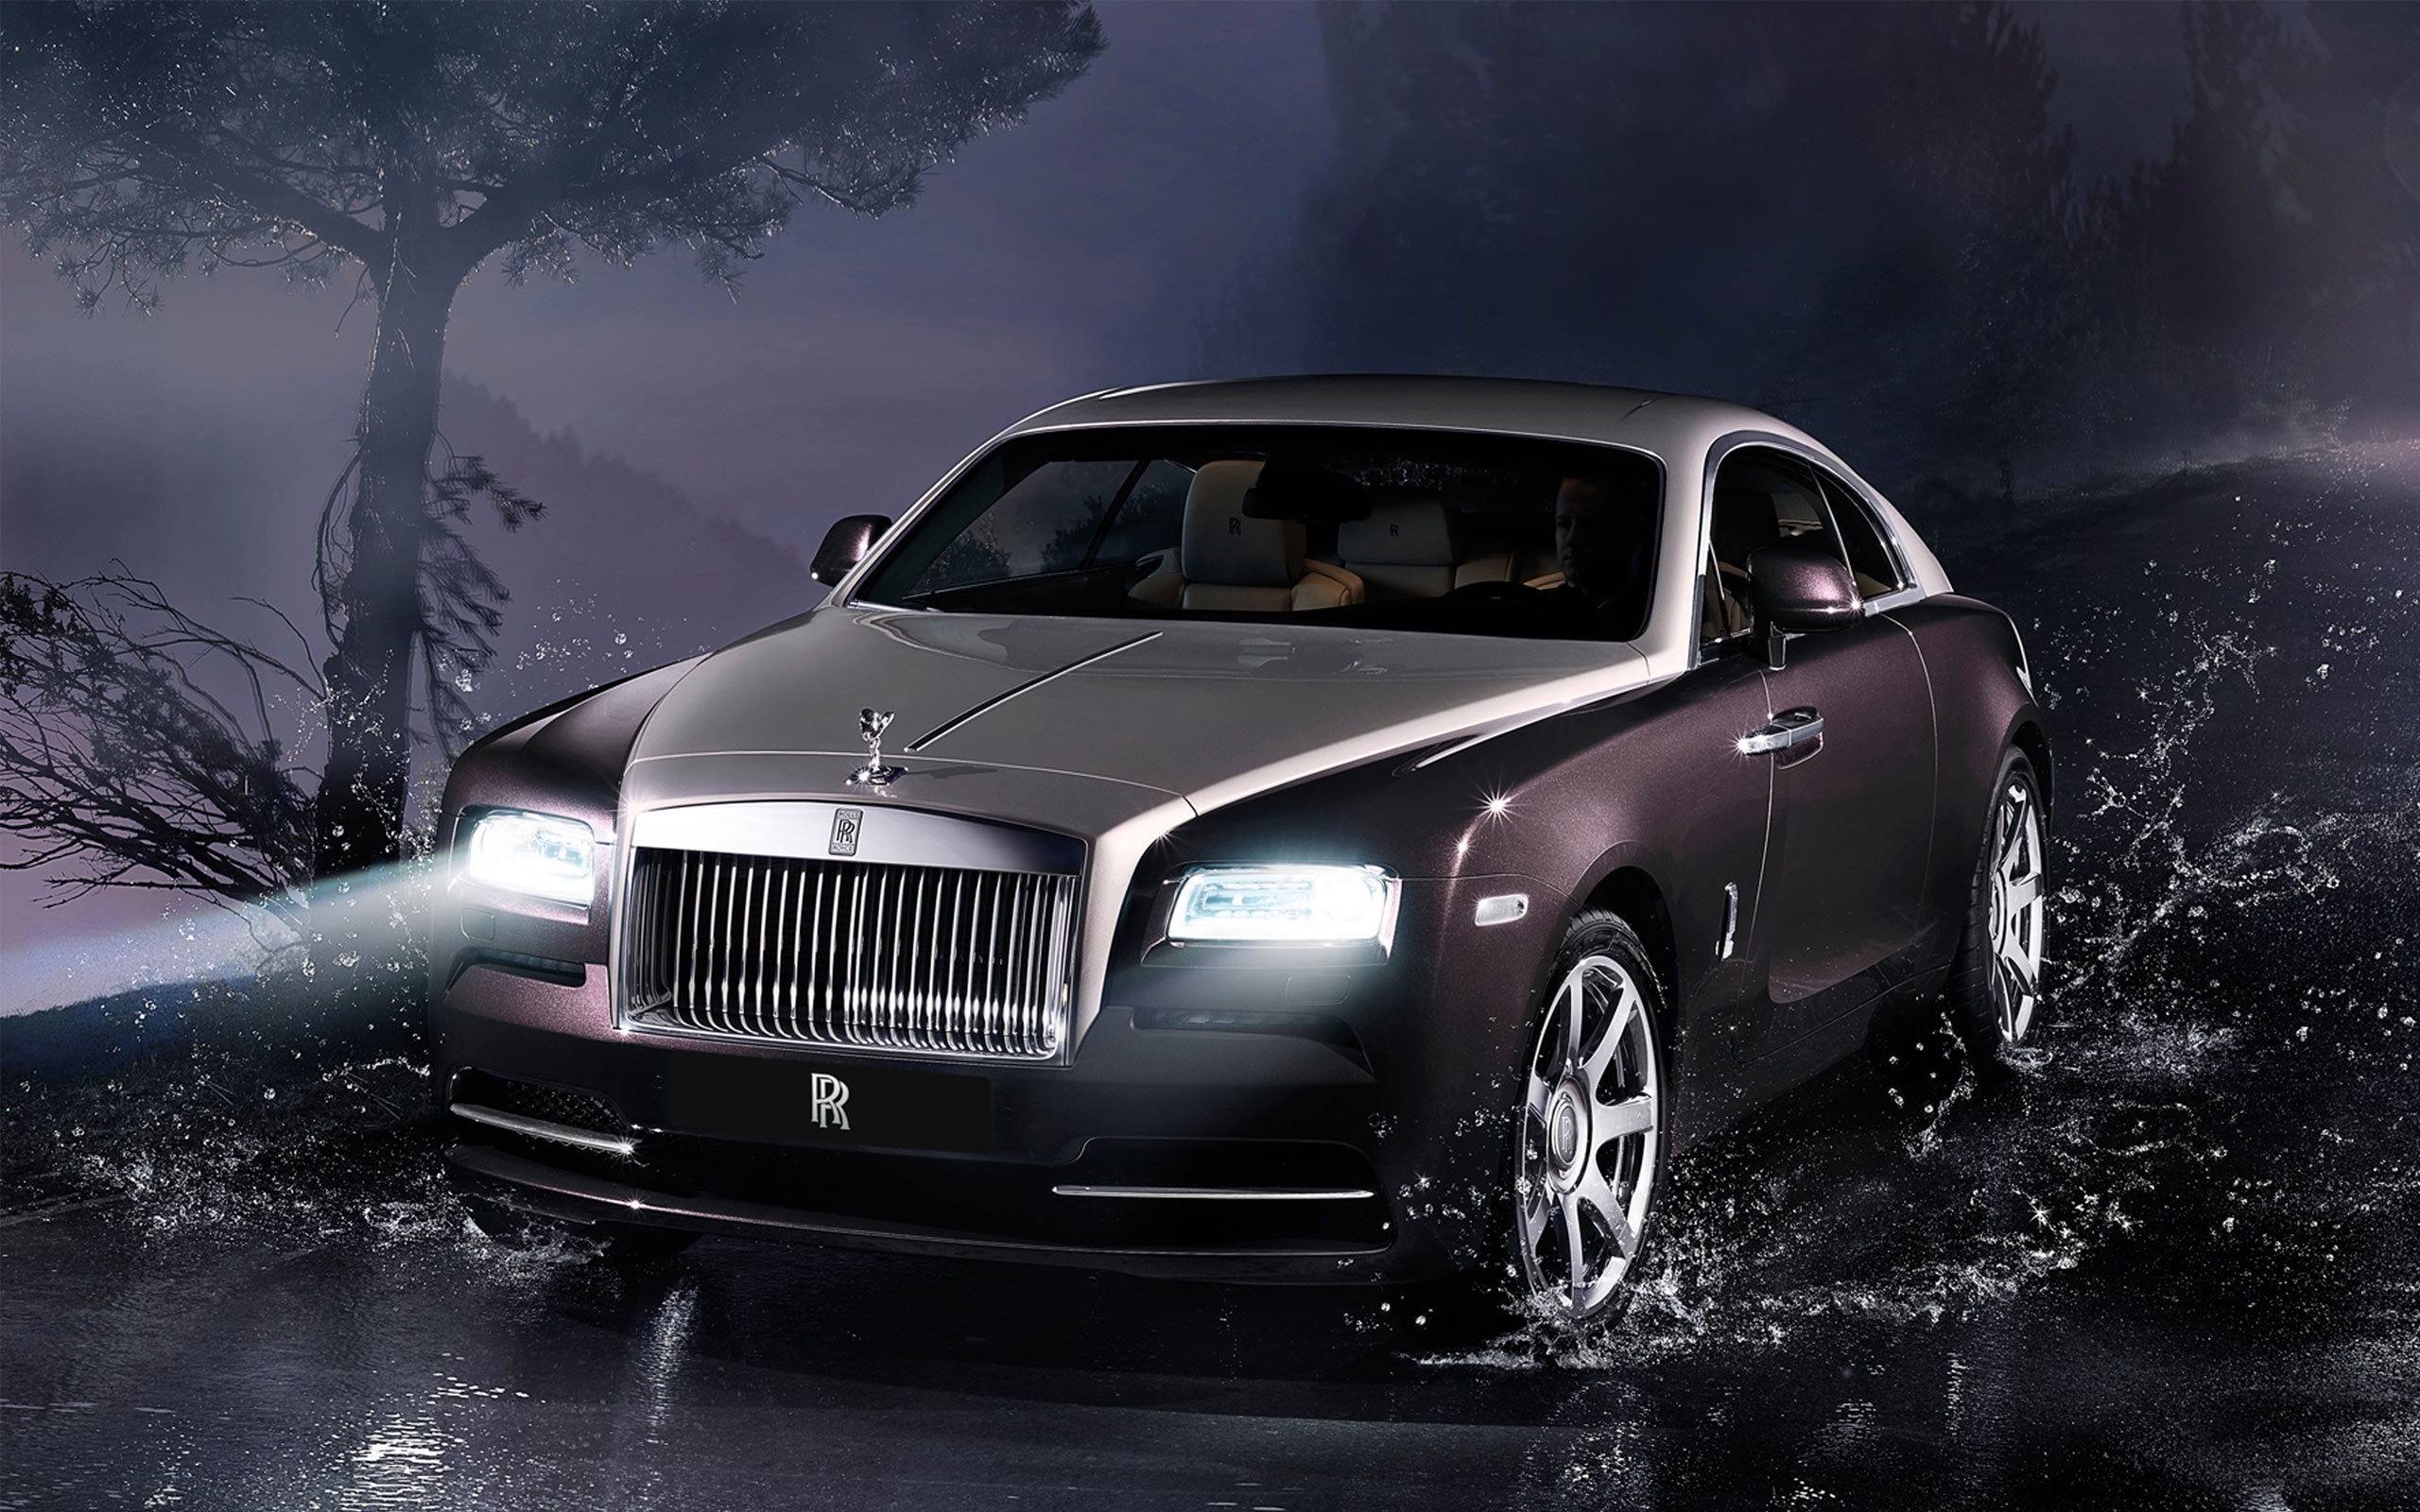 Rolls Royce Wraith 2014 Wallpaper  HD Car Wallpapers